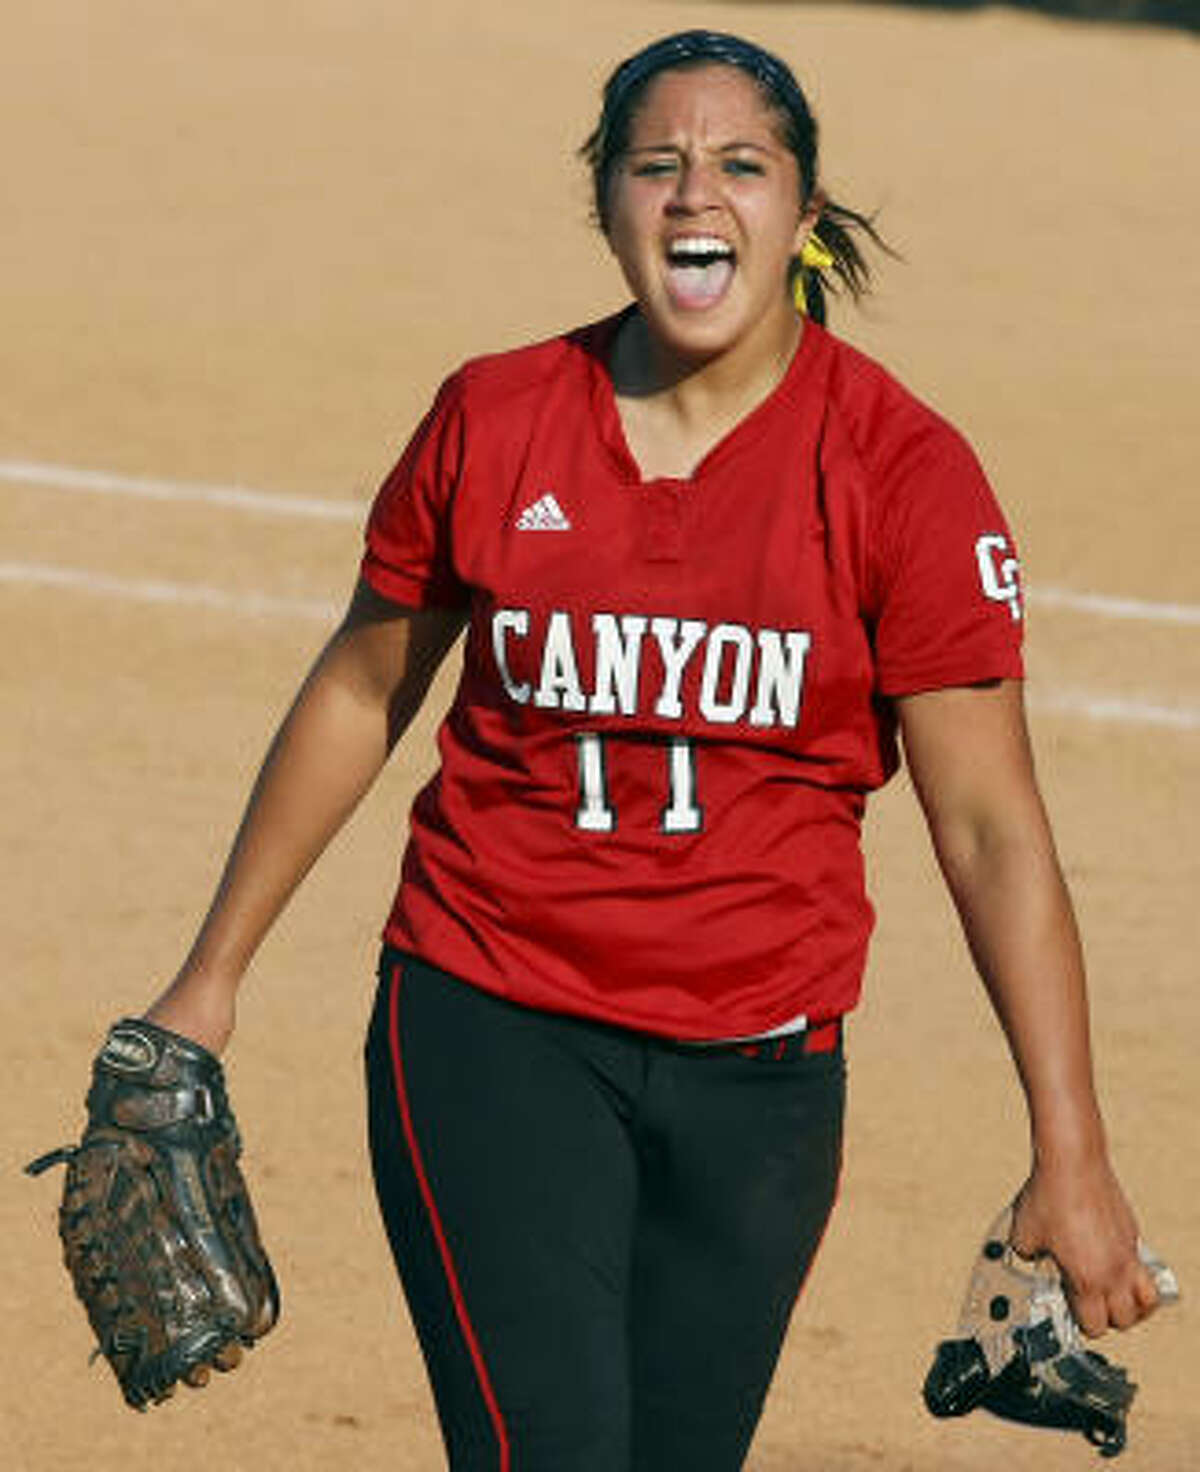 New Braunfels Canyon's Sara Mireles cheers after her team's 4-2 championship victory.